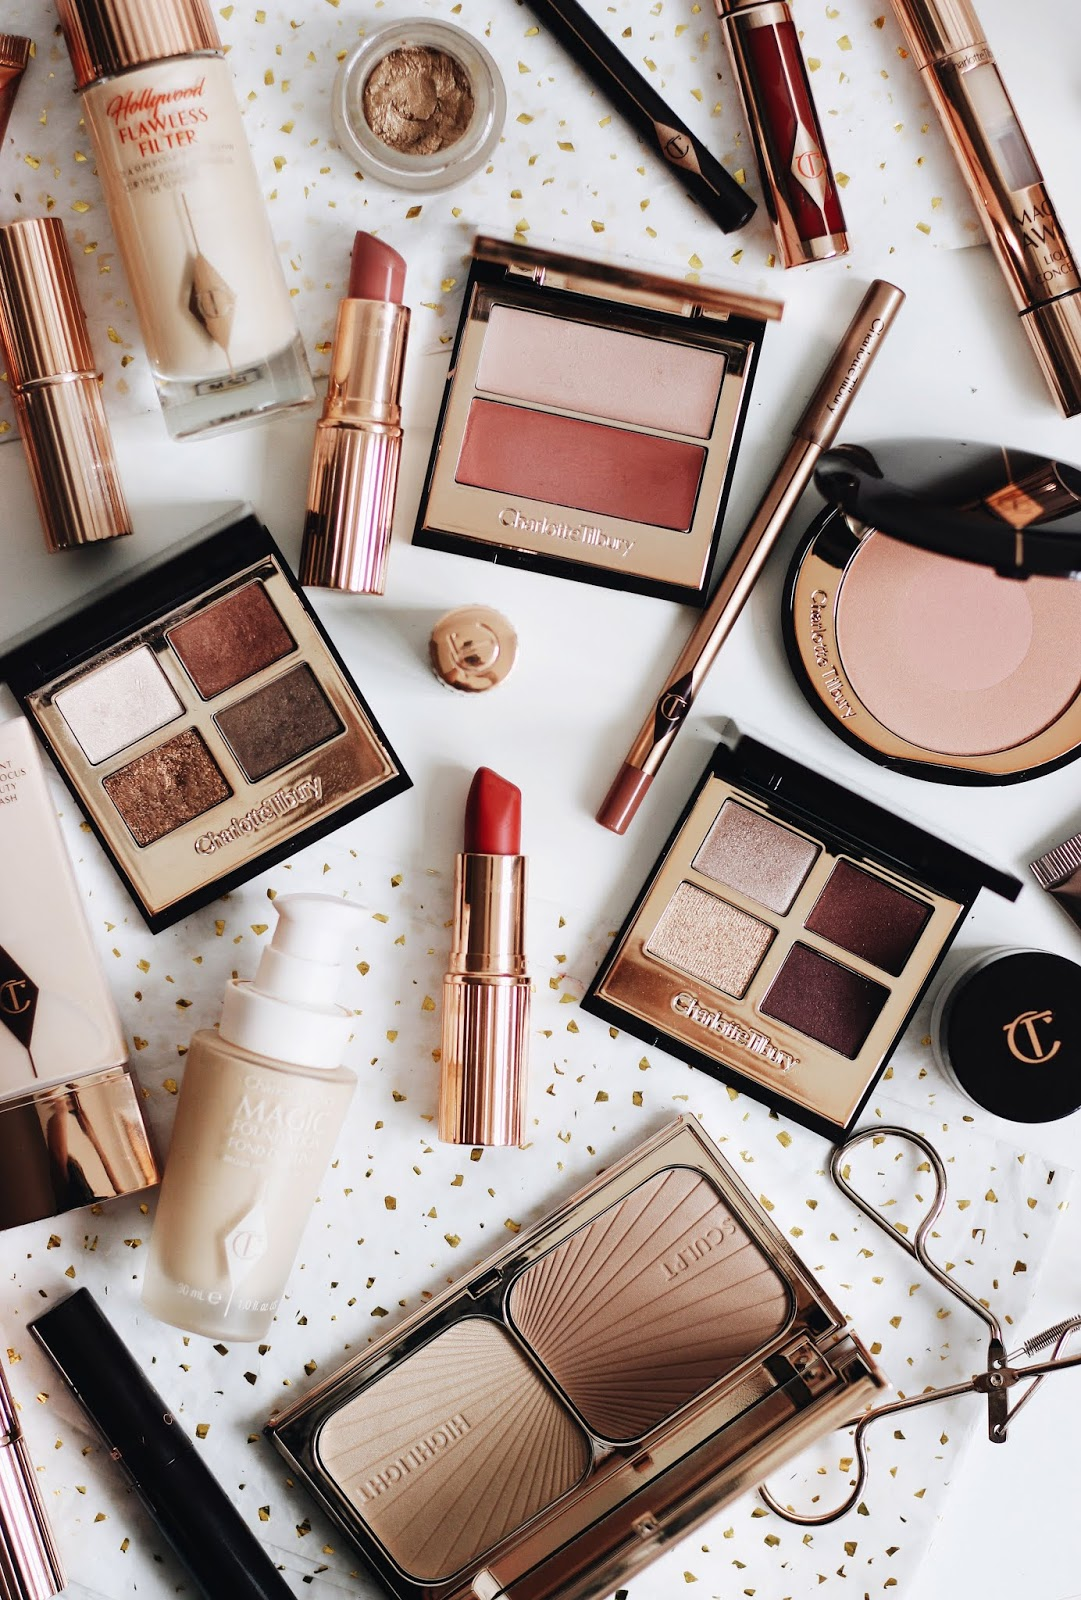 Charlotte Tilbury Makeup Collection